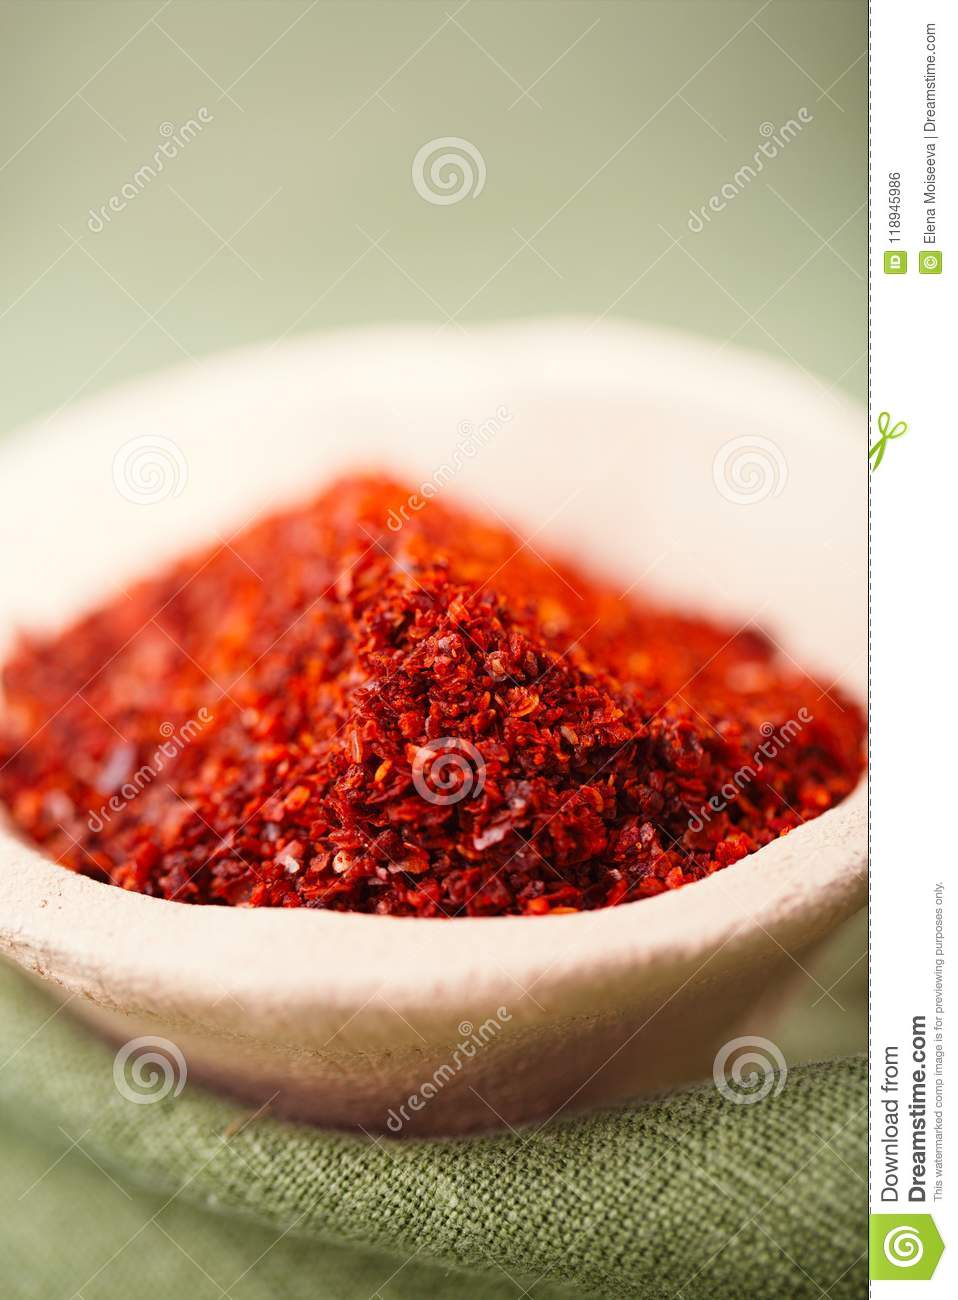 Marash Chili flakes stock photo  Image of aleppo, food